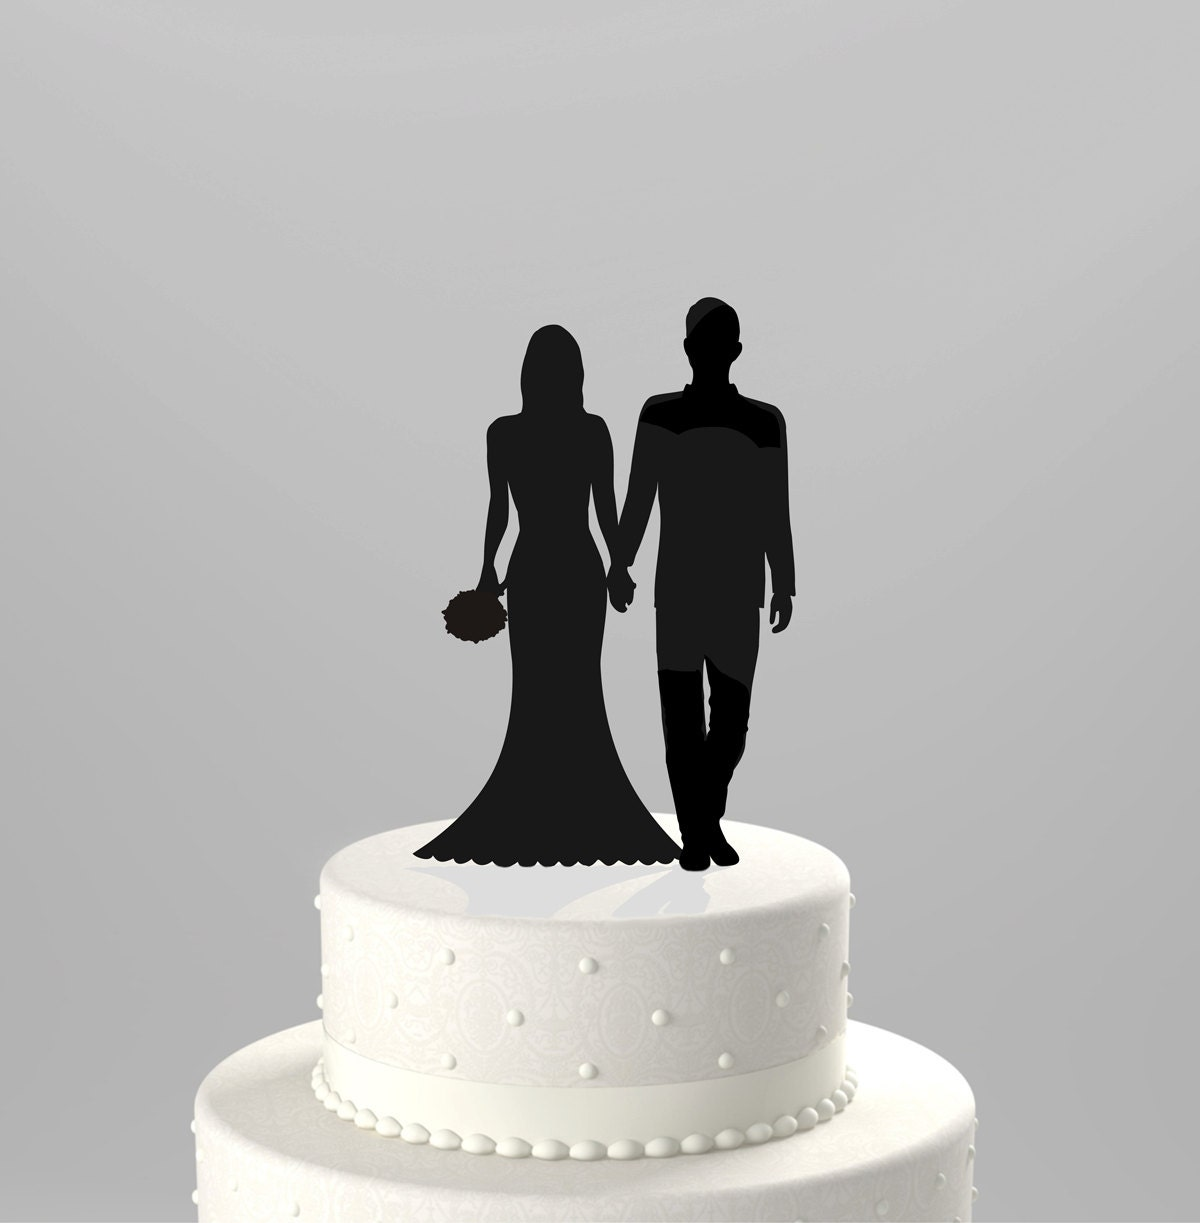 Bride Wedding Cake Topper: Wedding Cake Topper Silhouette Groom And Bride Hand In Hand